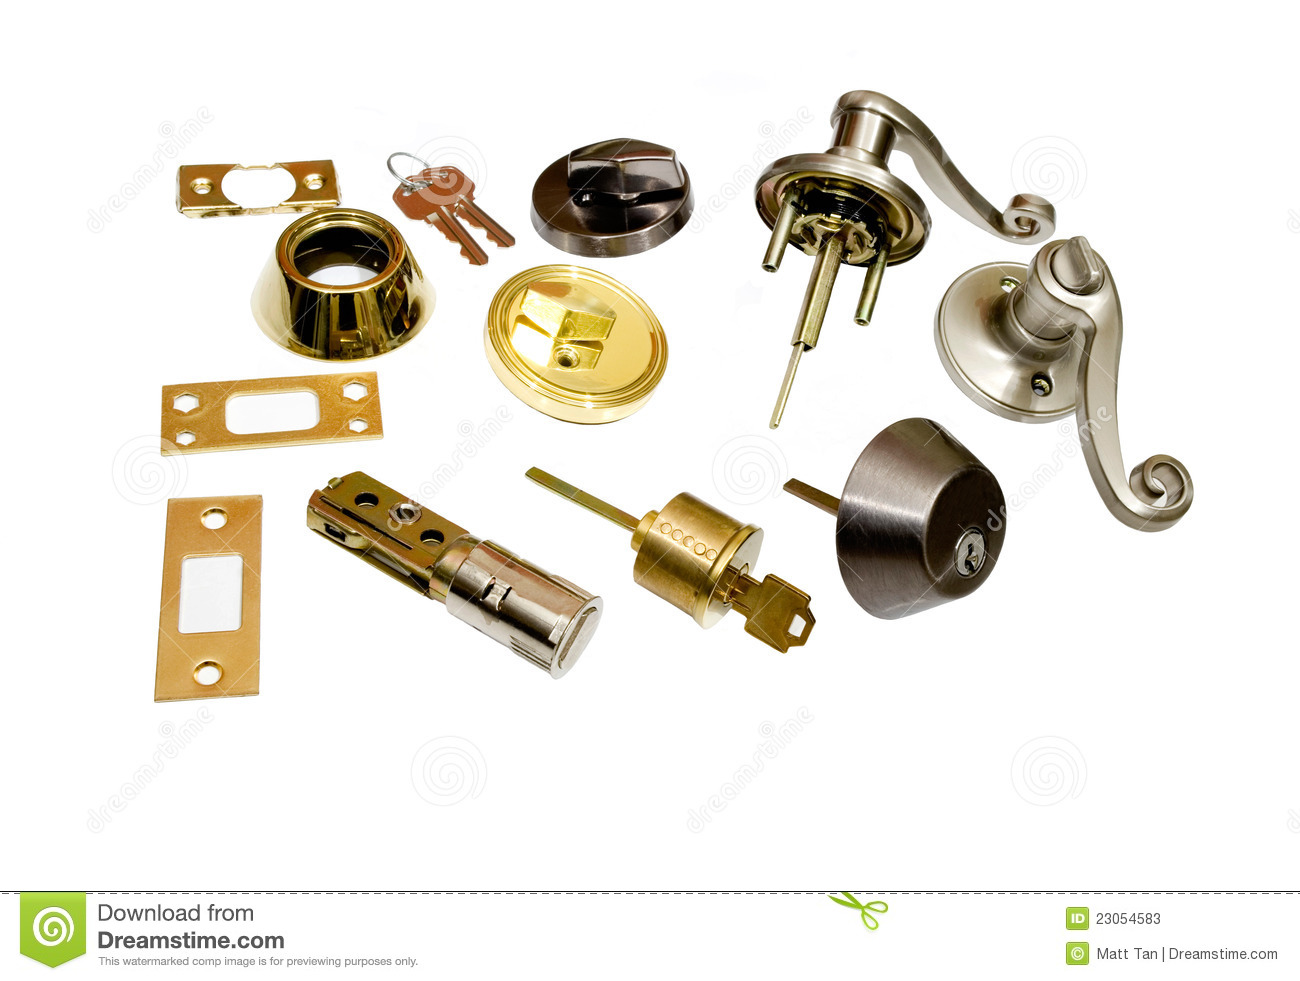 Home hardware locksmith doors and locks stock image for Home hardware doors